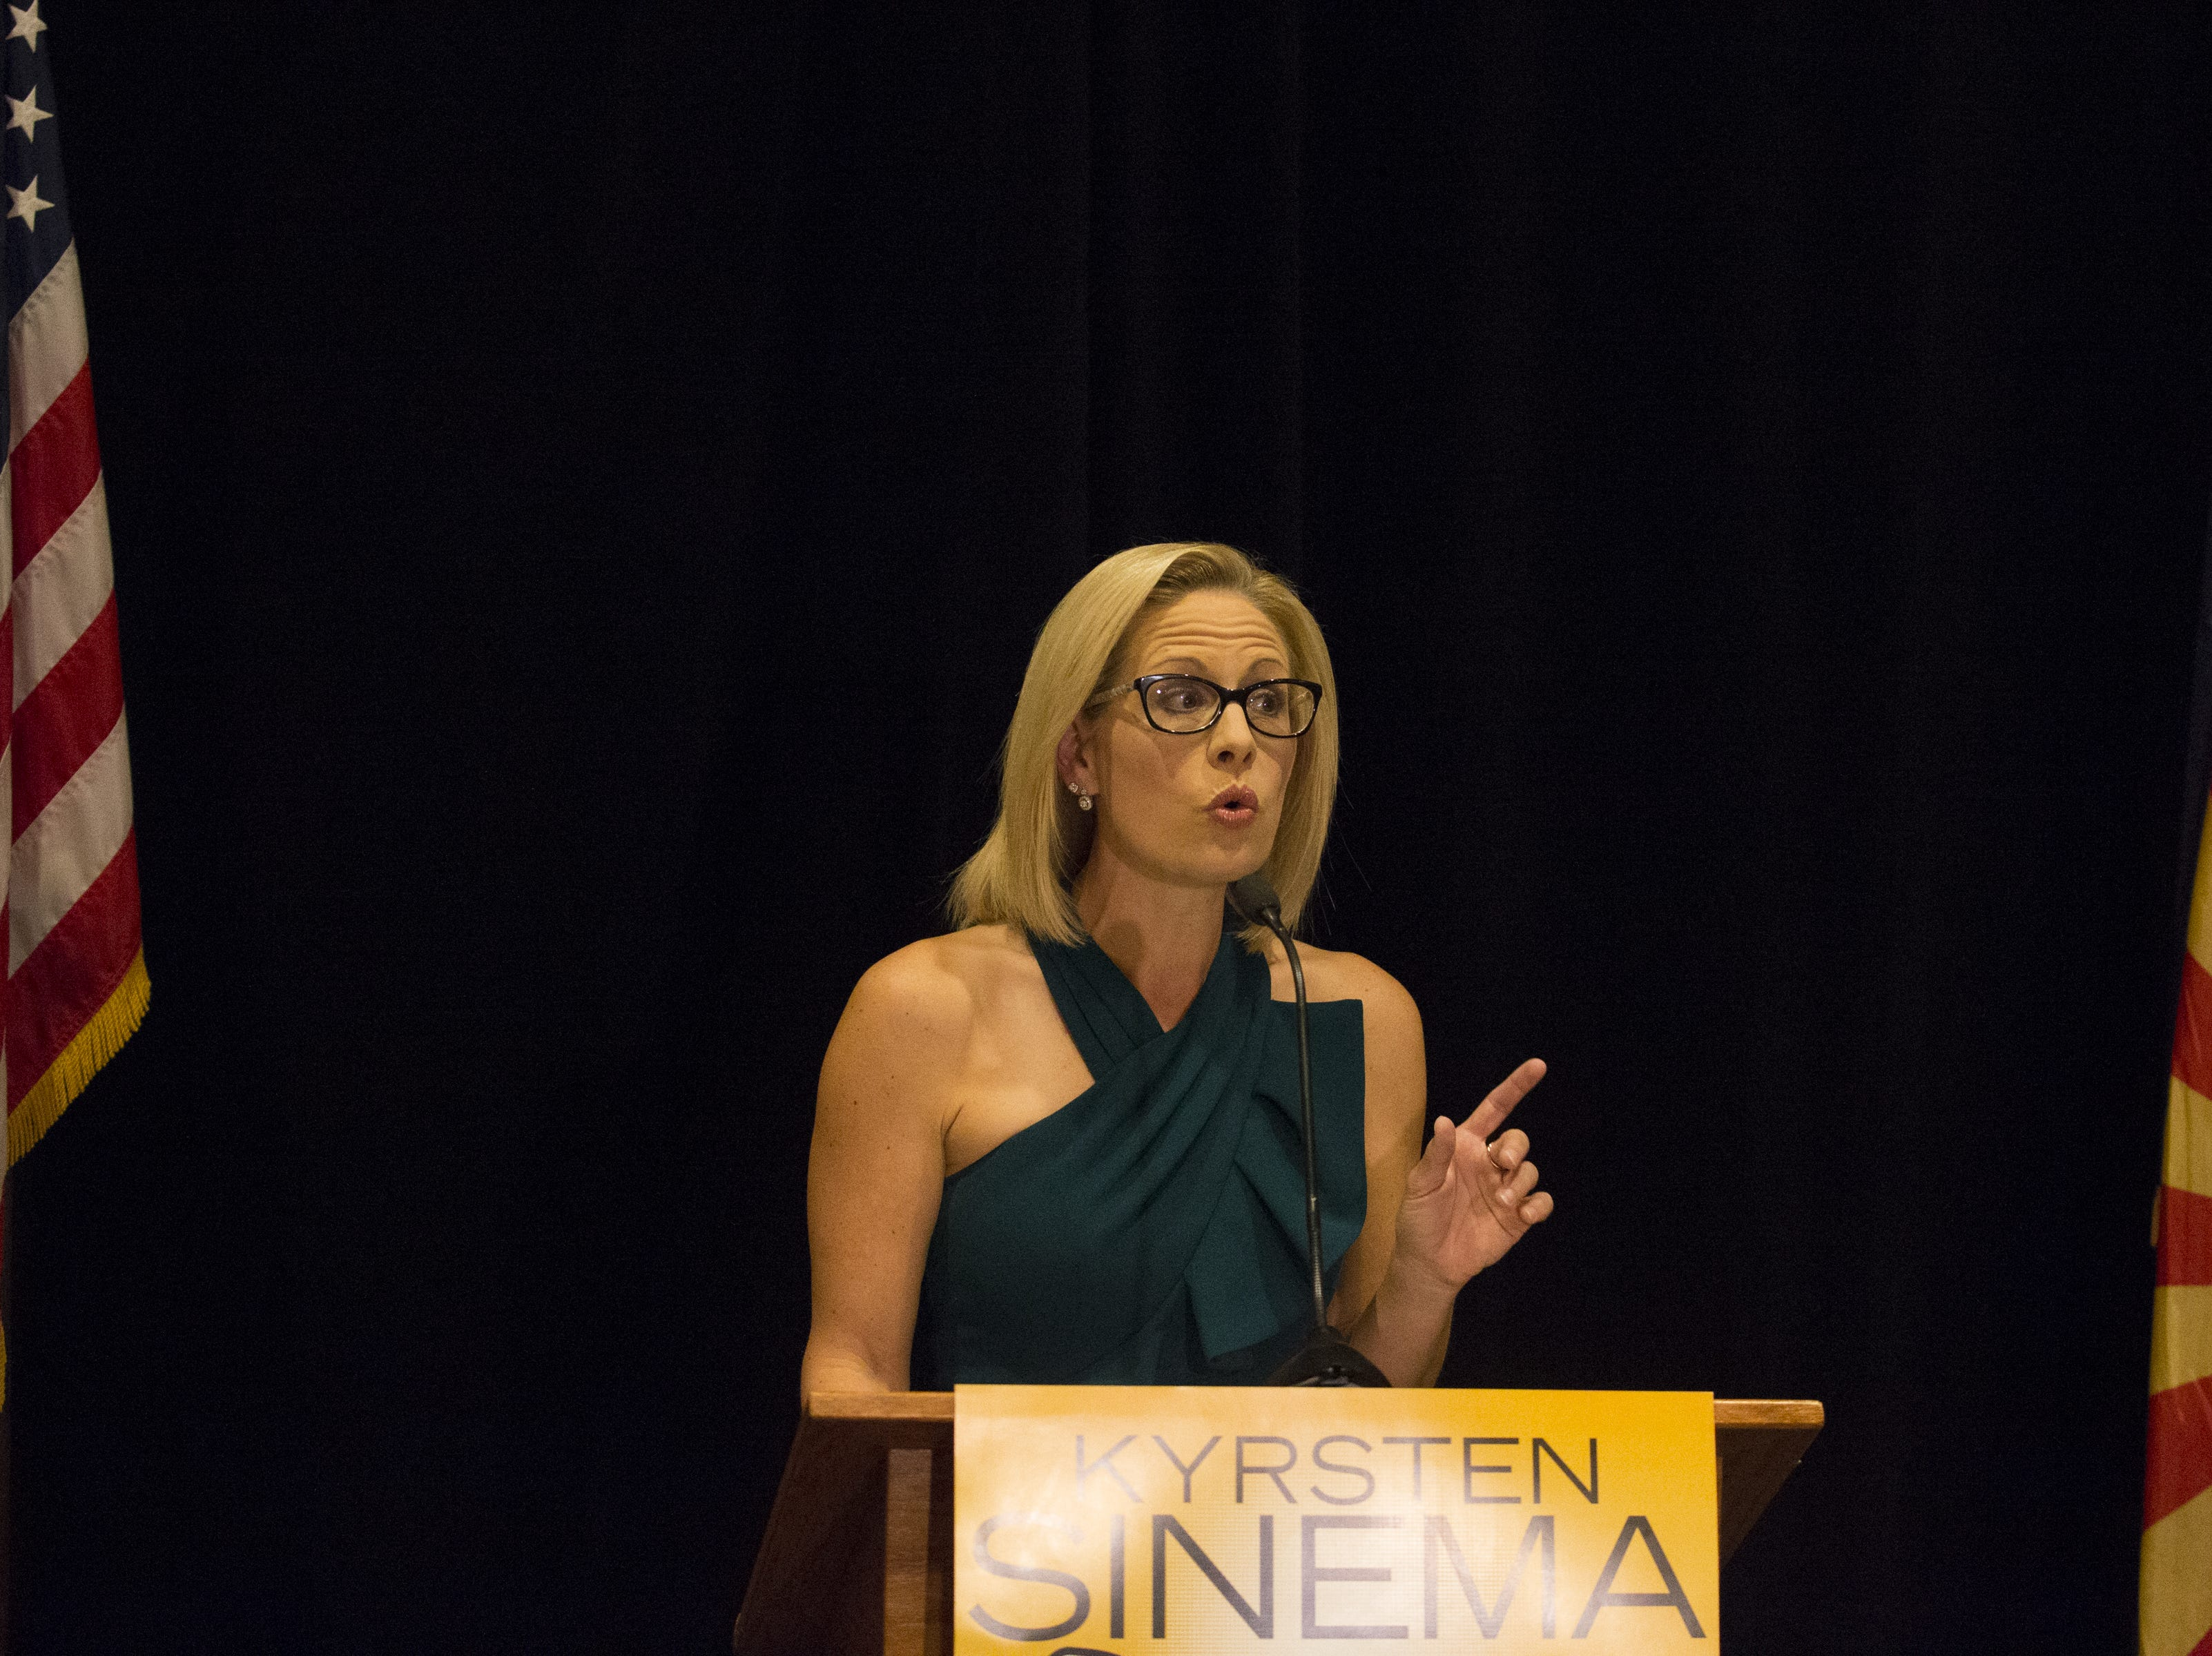 Kyrsten Sinema talks to supporters during a press conference, November 12, 2018, at the Omni Scottsdale Resort & Spa at Montelucia, 4949 E Lincoln Drive, Scottsdale.